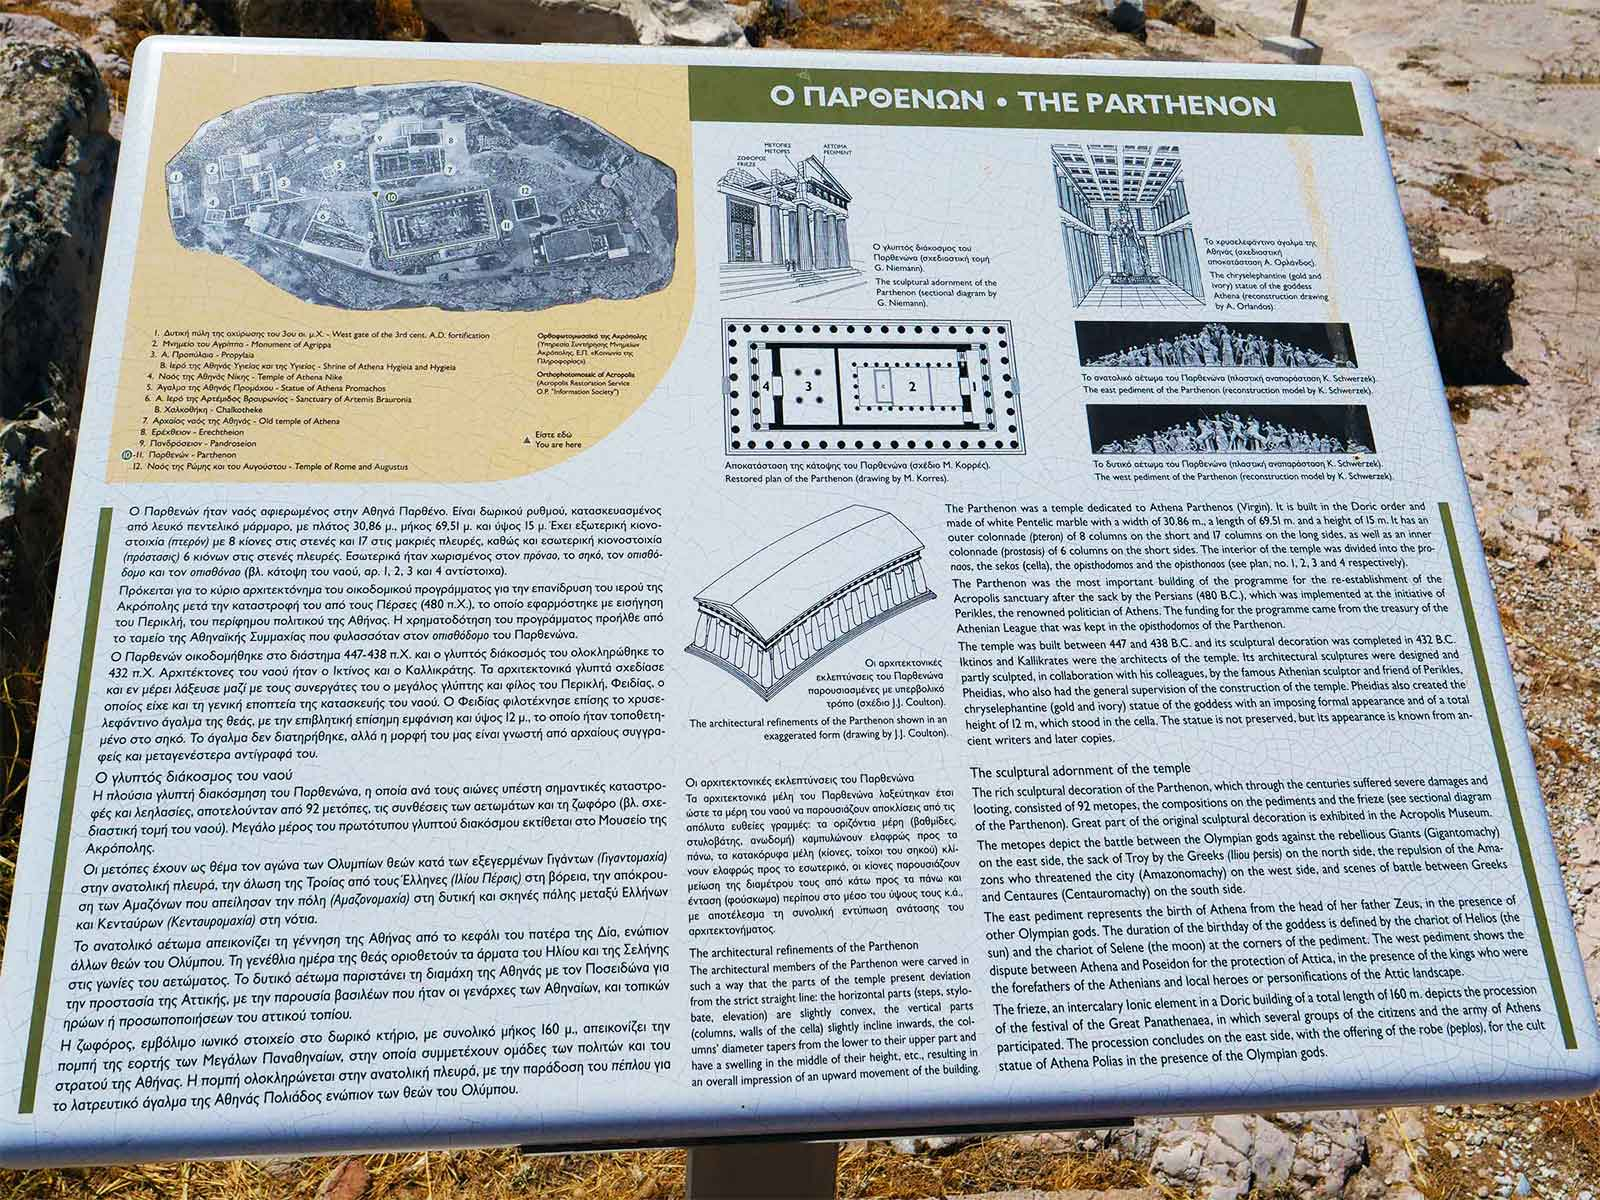 Parthenon Sign | Acropolis | Athens Greece | Dr Steven A Martin | Archaeological Research 2019